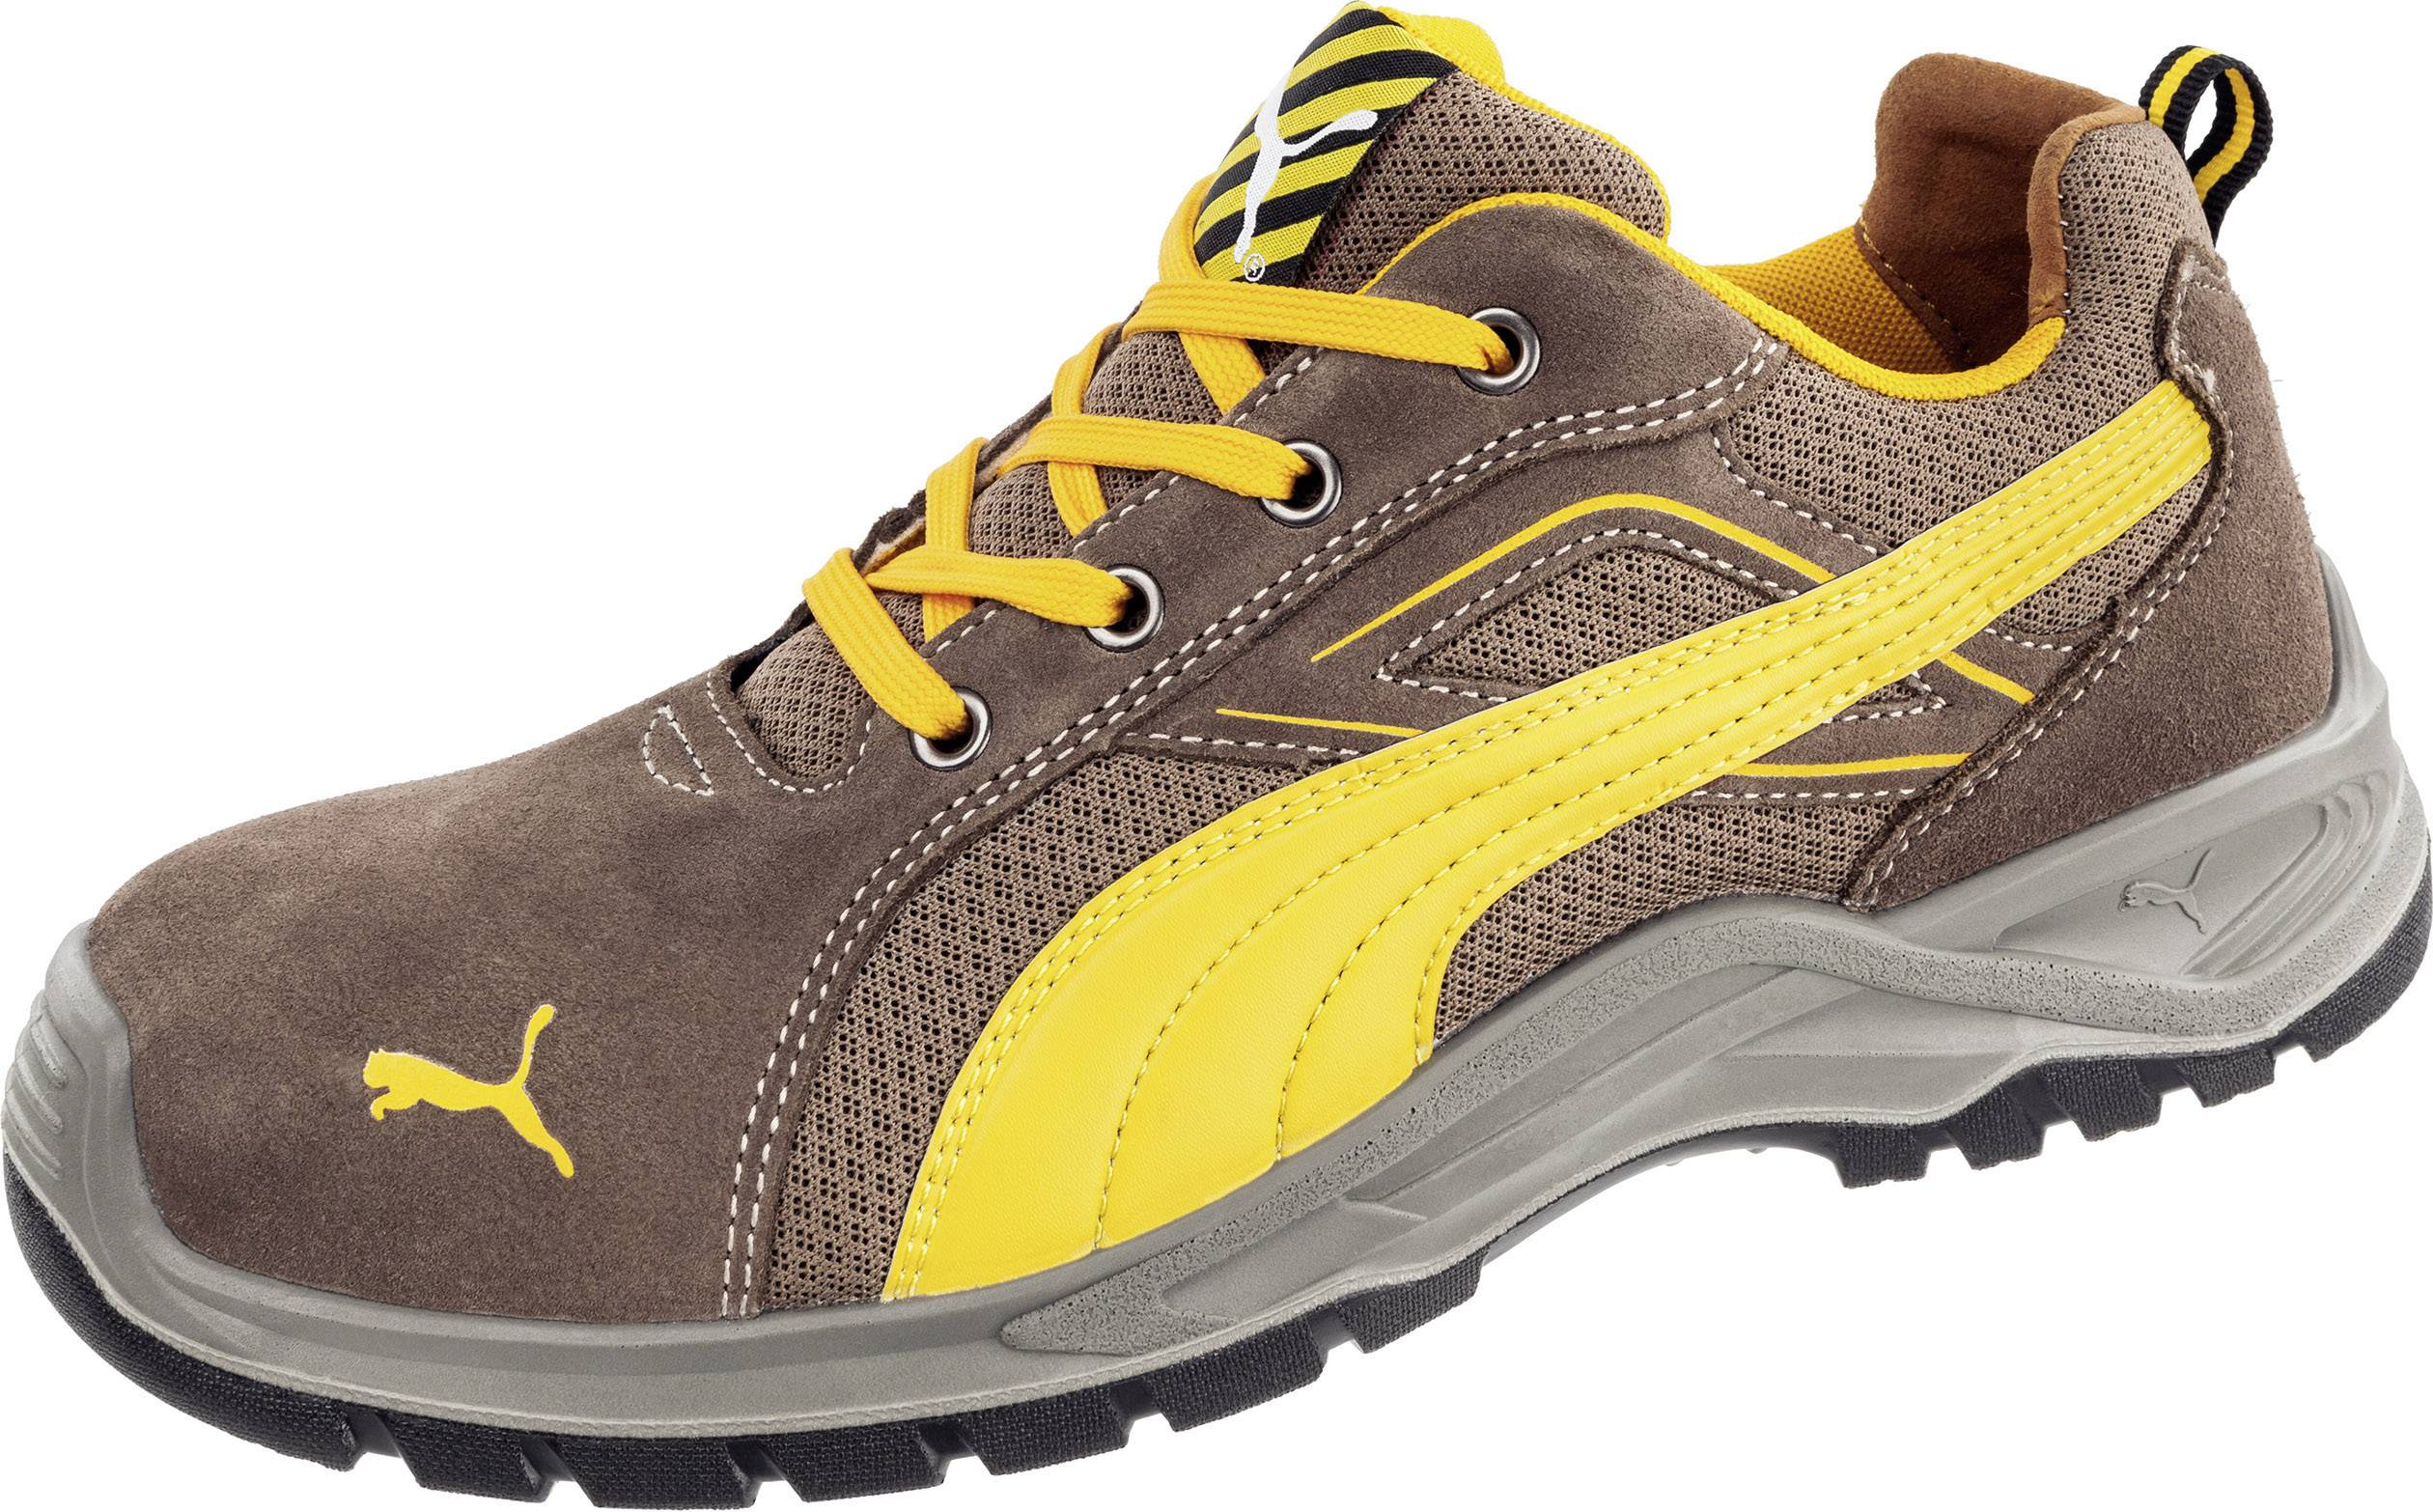 PUMA Safety Omni Brown Low SRC 643630-41 Protective footwear S1P ...